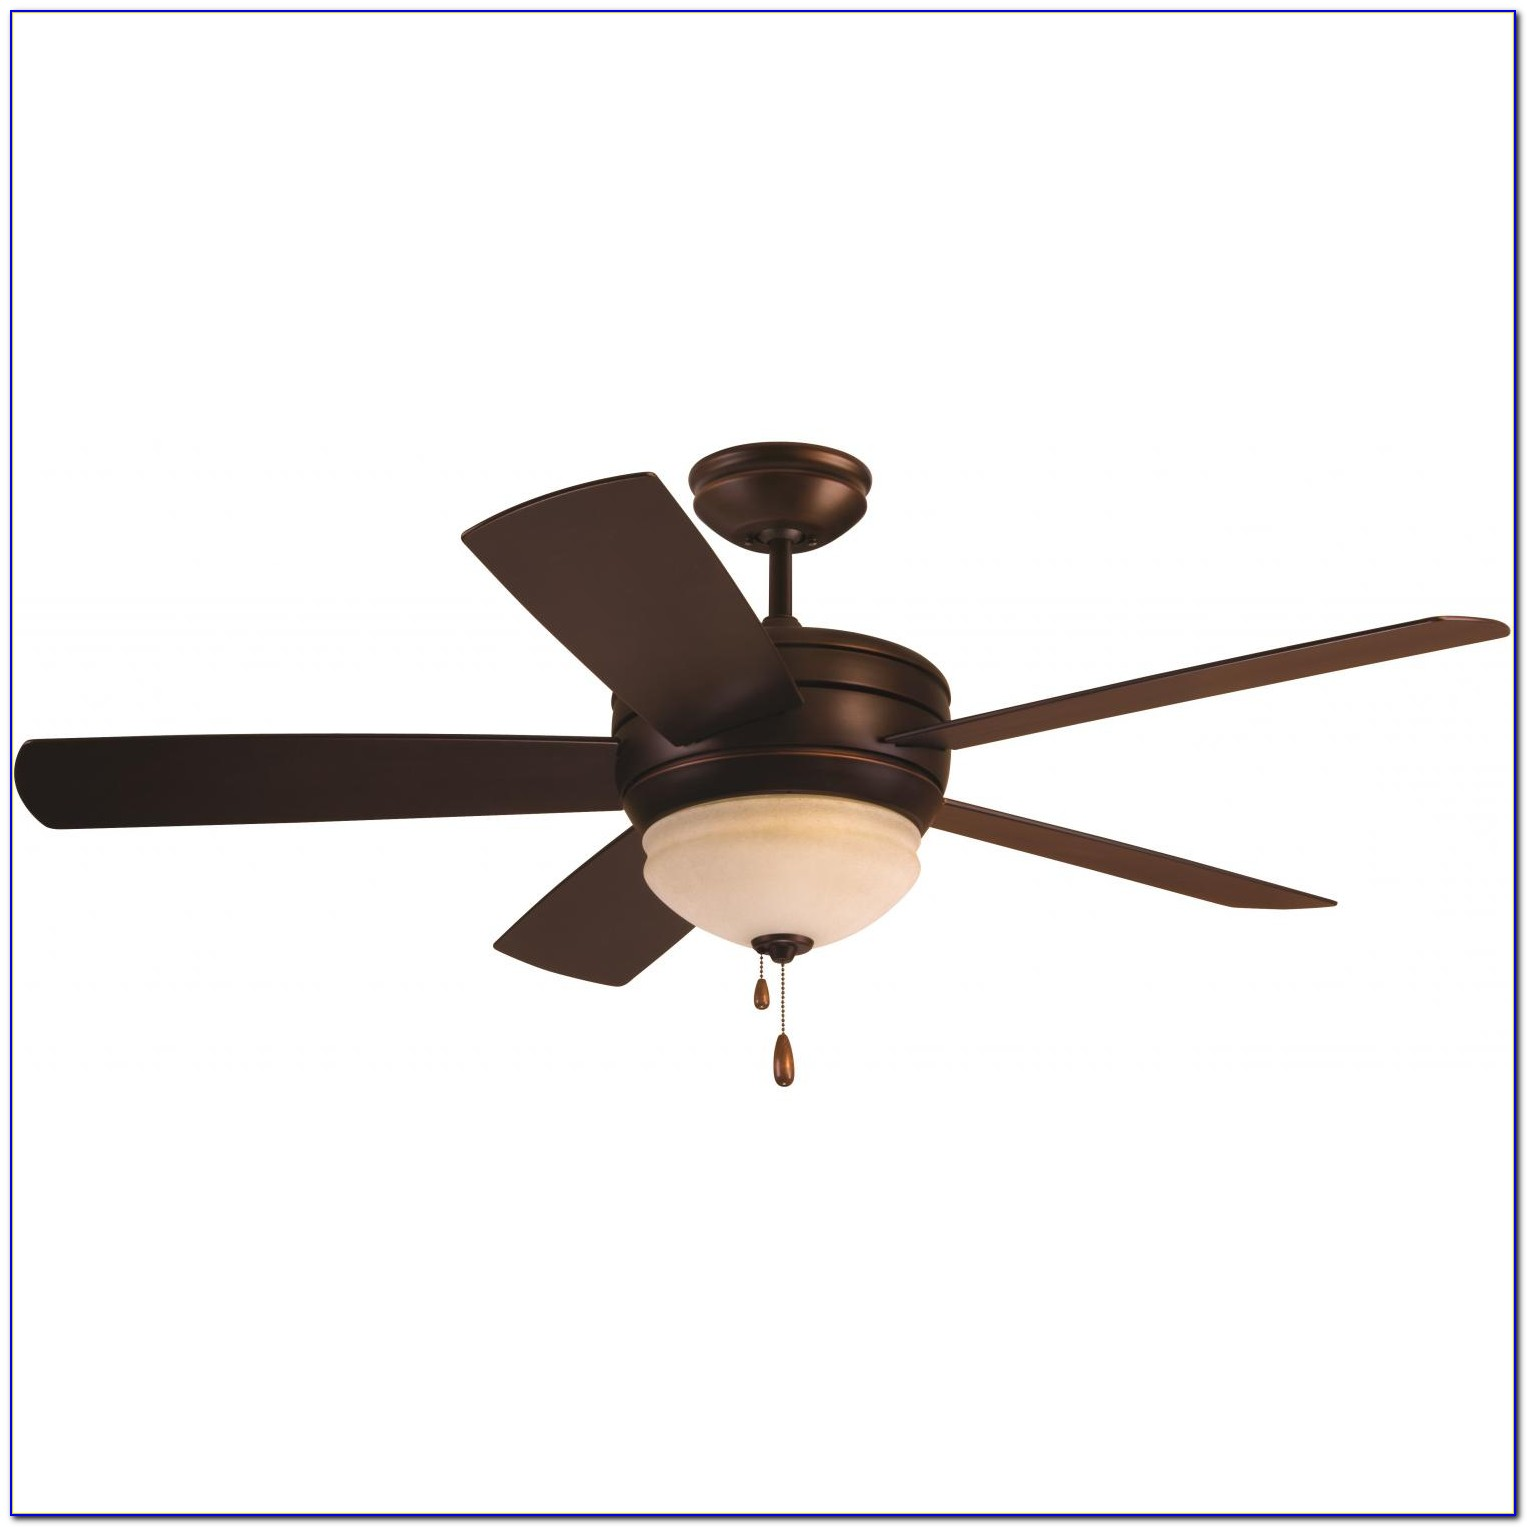 Emerson Outdoor Ceiling Fan Blades